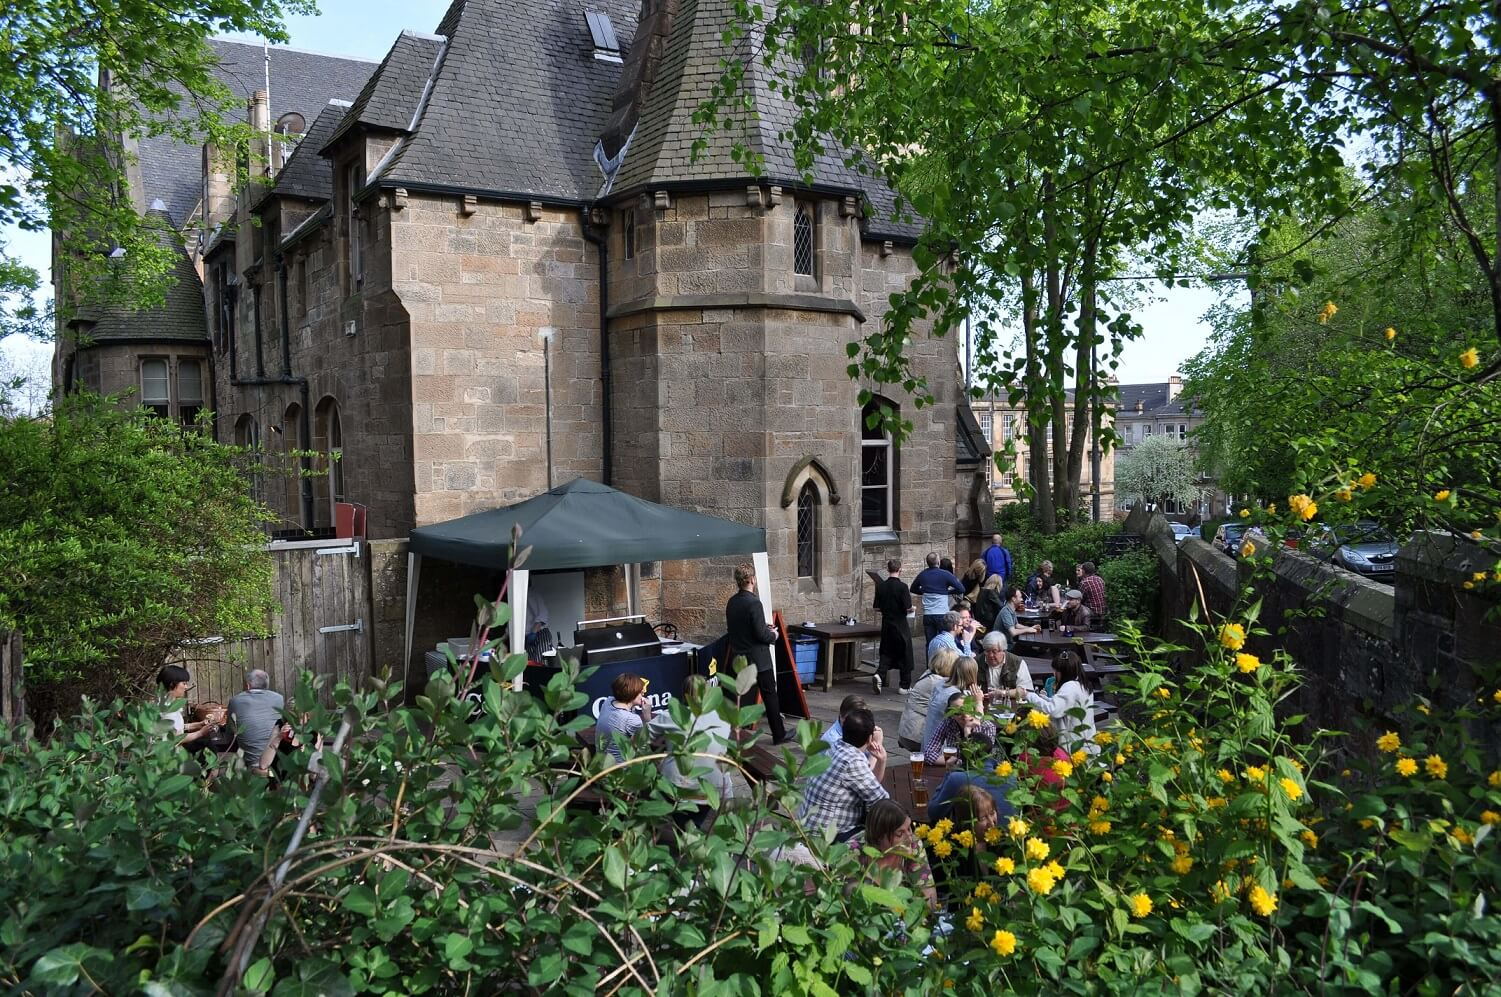 You can count on Cottiers to be one of Glasgow's best beer gardens, hosting regular BBQs in the summer months.